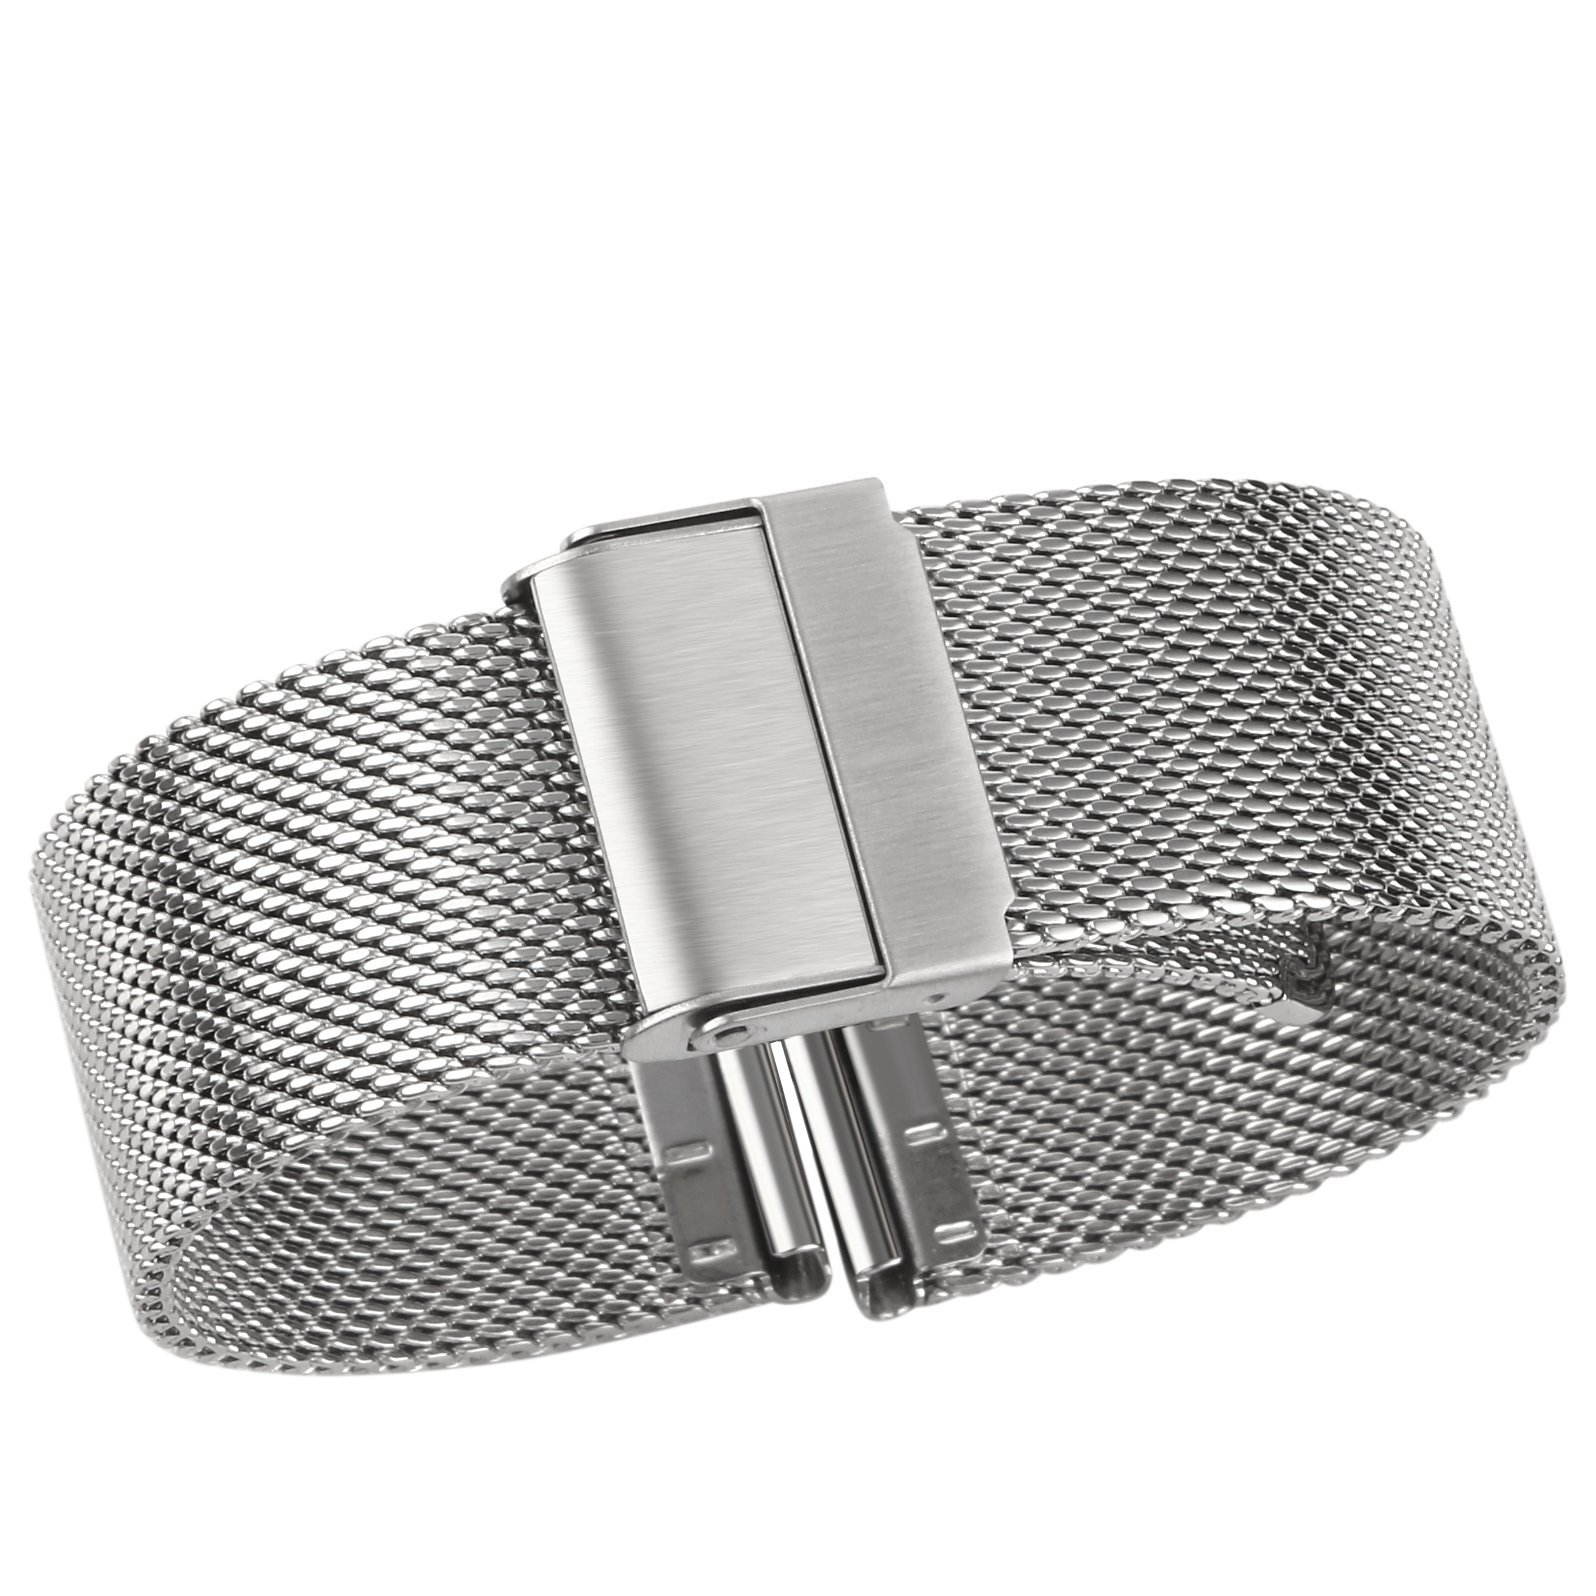 Luxury High-end Fashion Watch Mesh Band Metal Milanese Strap Deluxe Replacement Bracelet for Watch with Solid Safety Folding Clasp, 316L Stainless Steel, for Men & Women, Silver 22mm